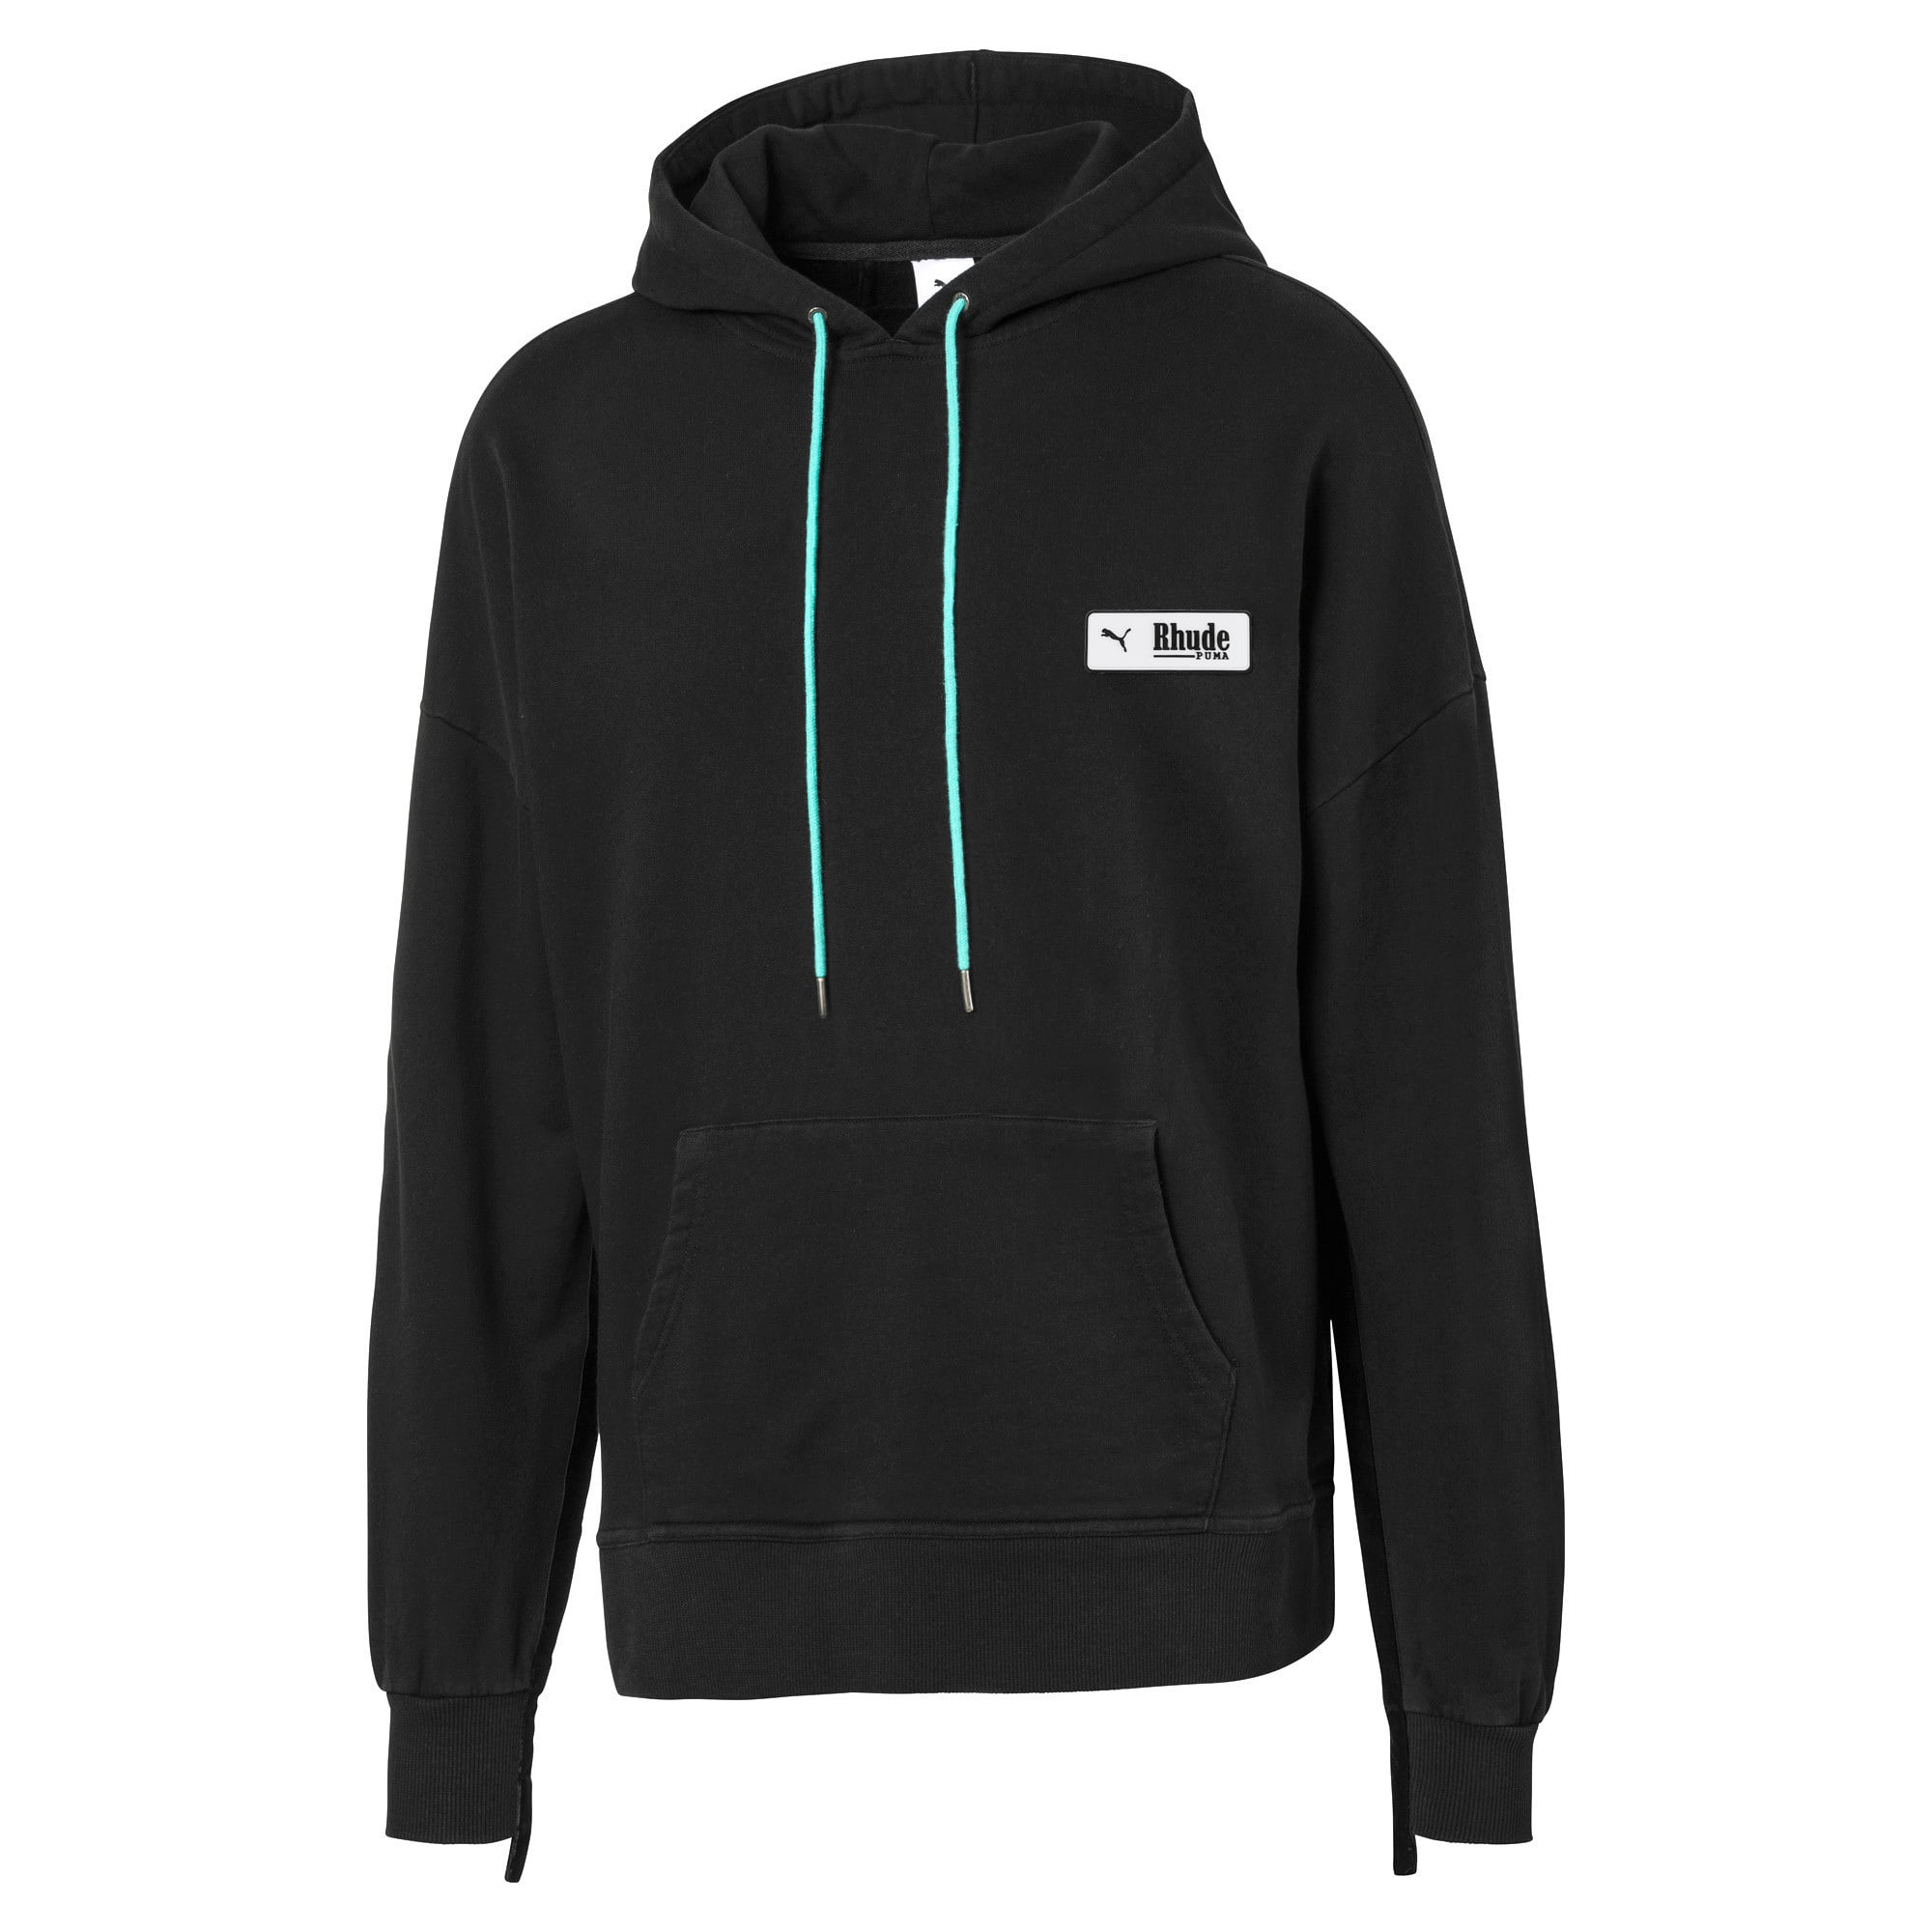 Thumbnail 1 of PUMA x RHUDE Men's Hoodie, Puma Black, medium